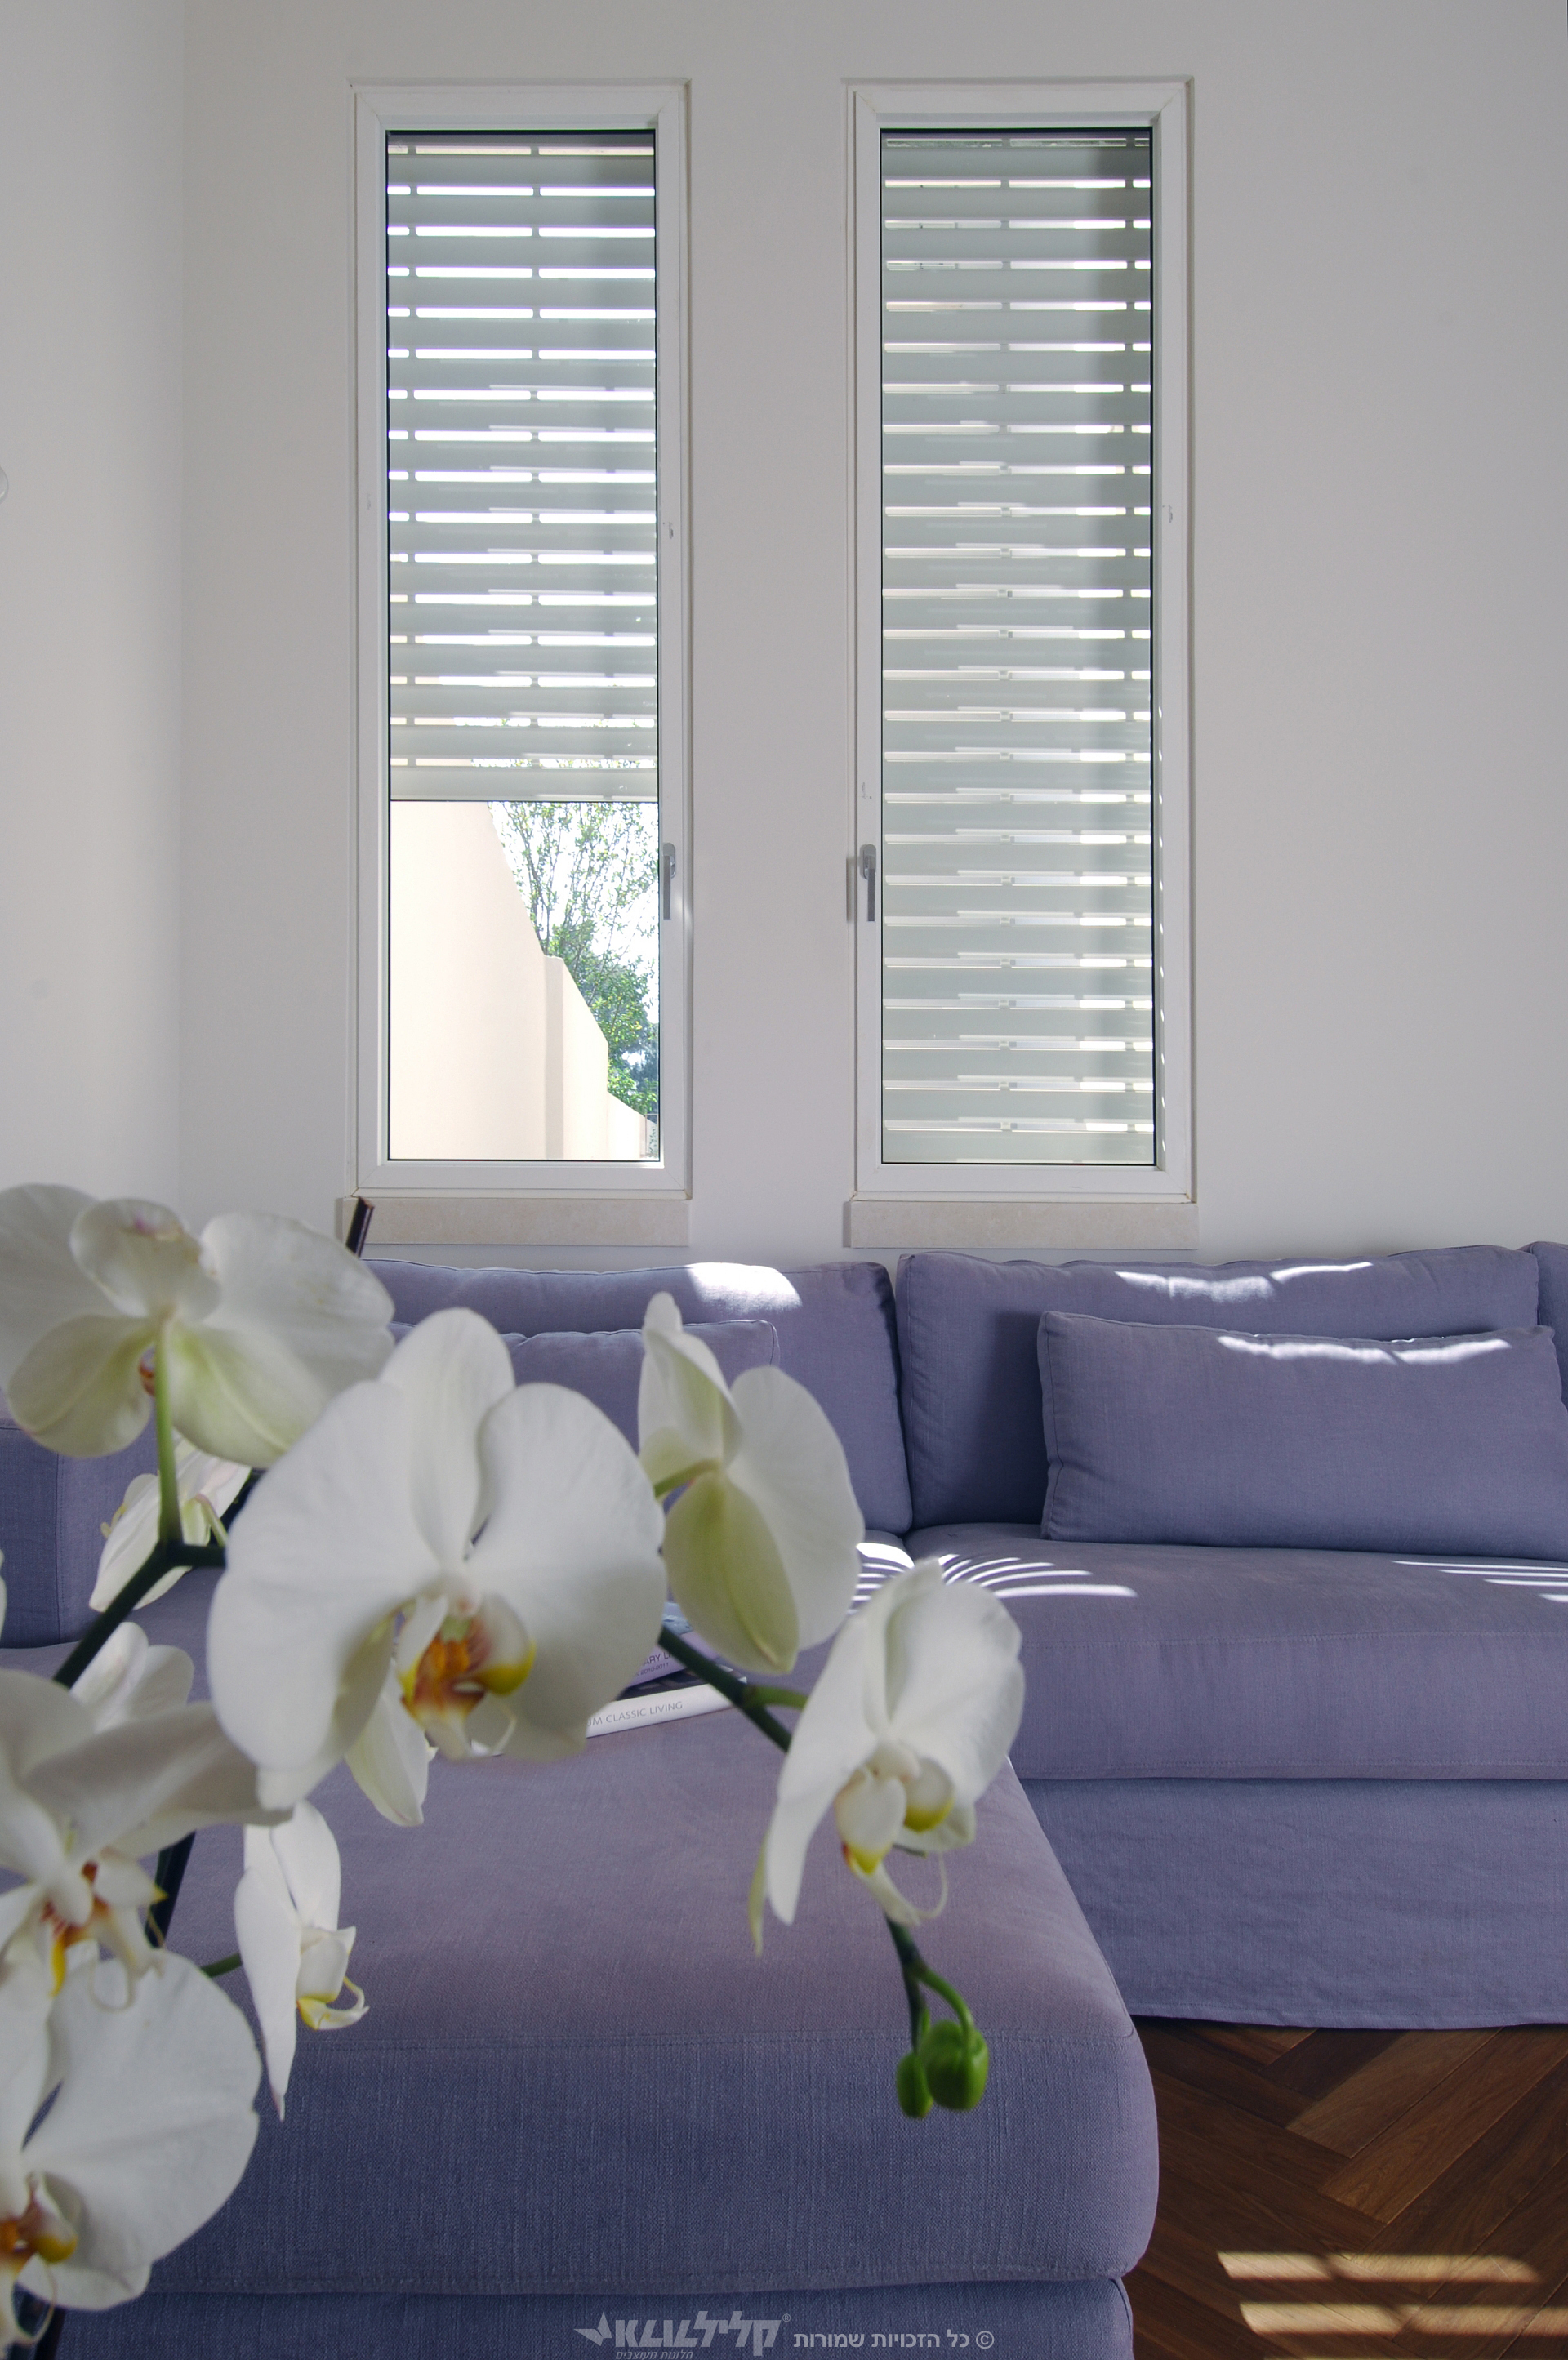 Lath shutters-hinge window